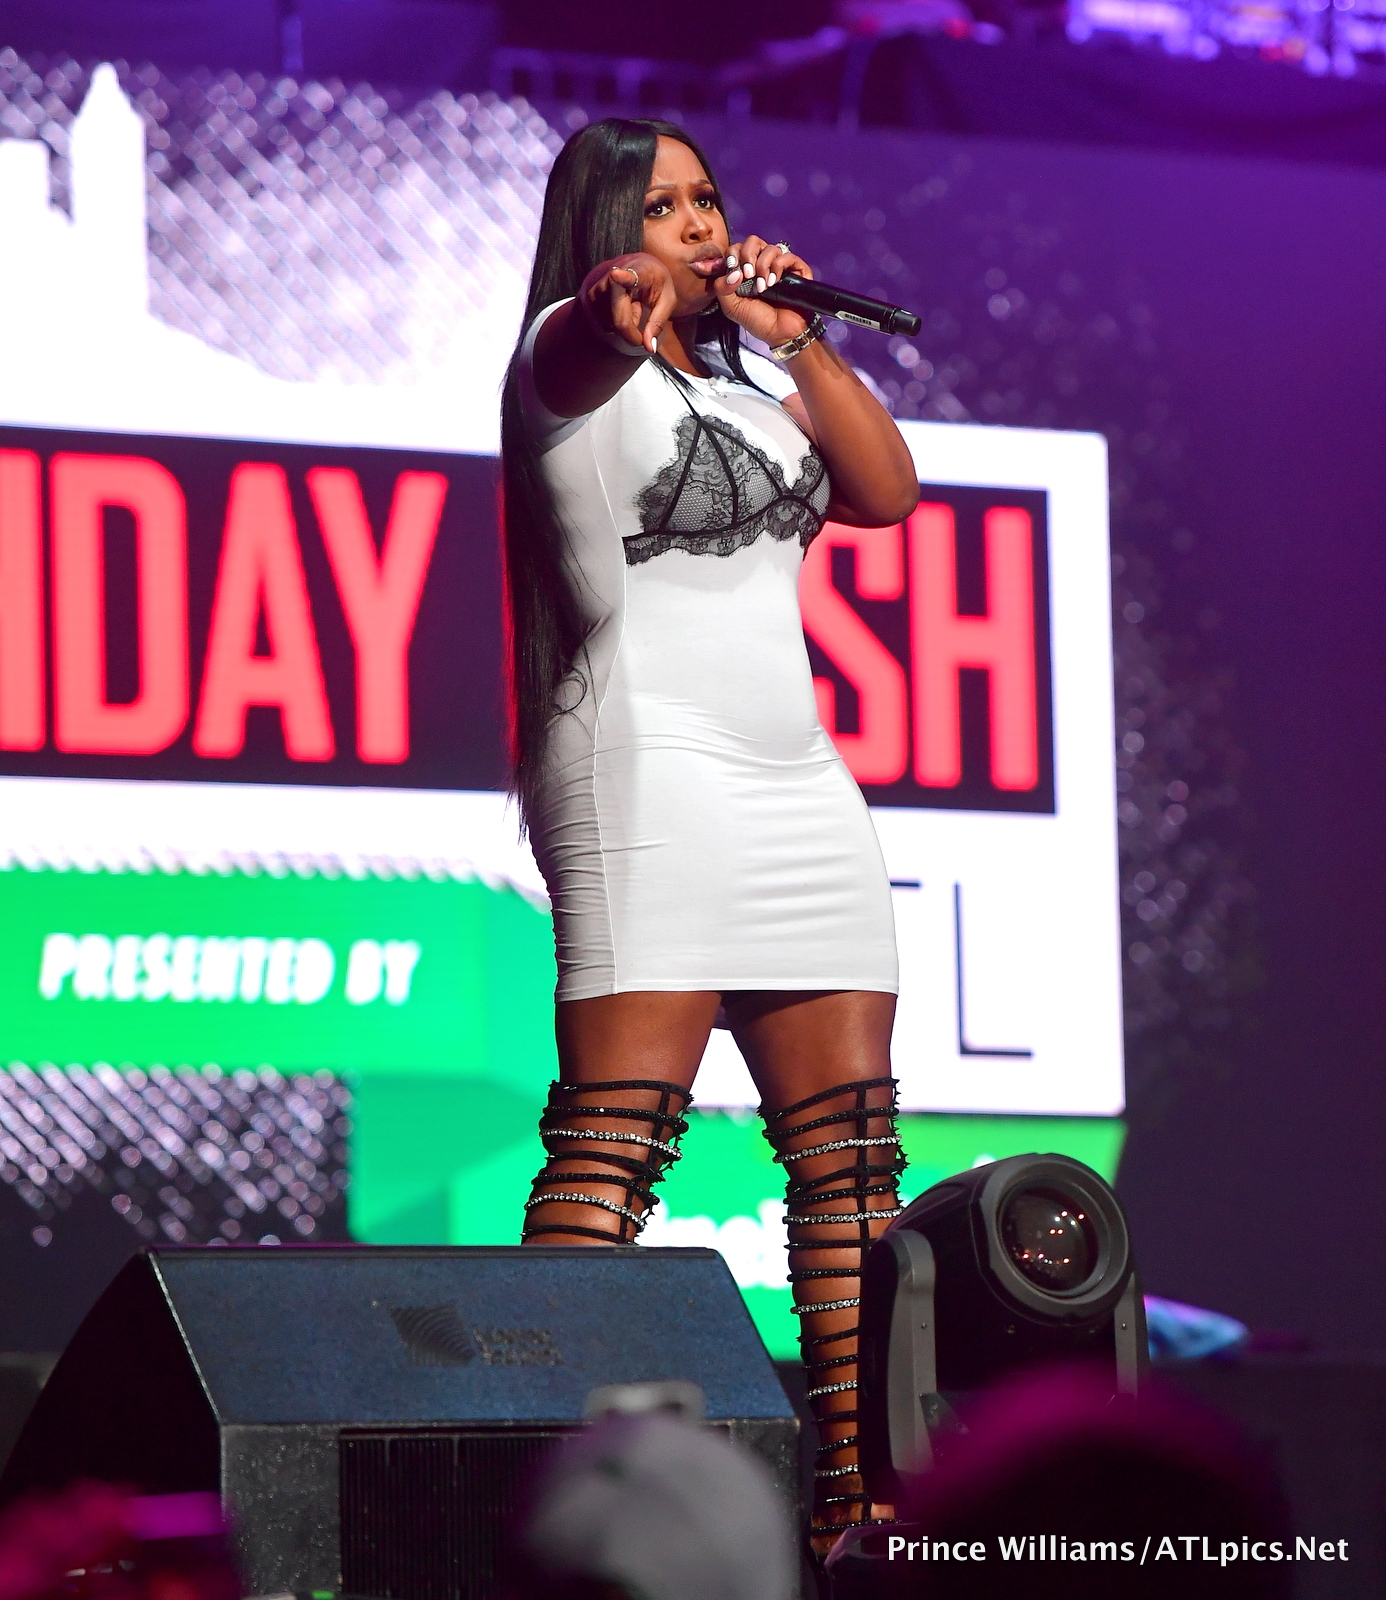 Remy Ma at #BirthdayBashATL2017